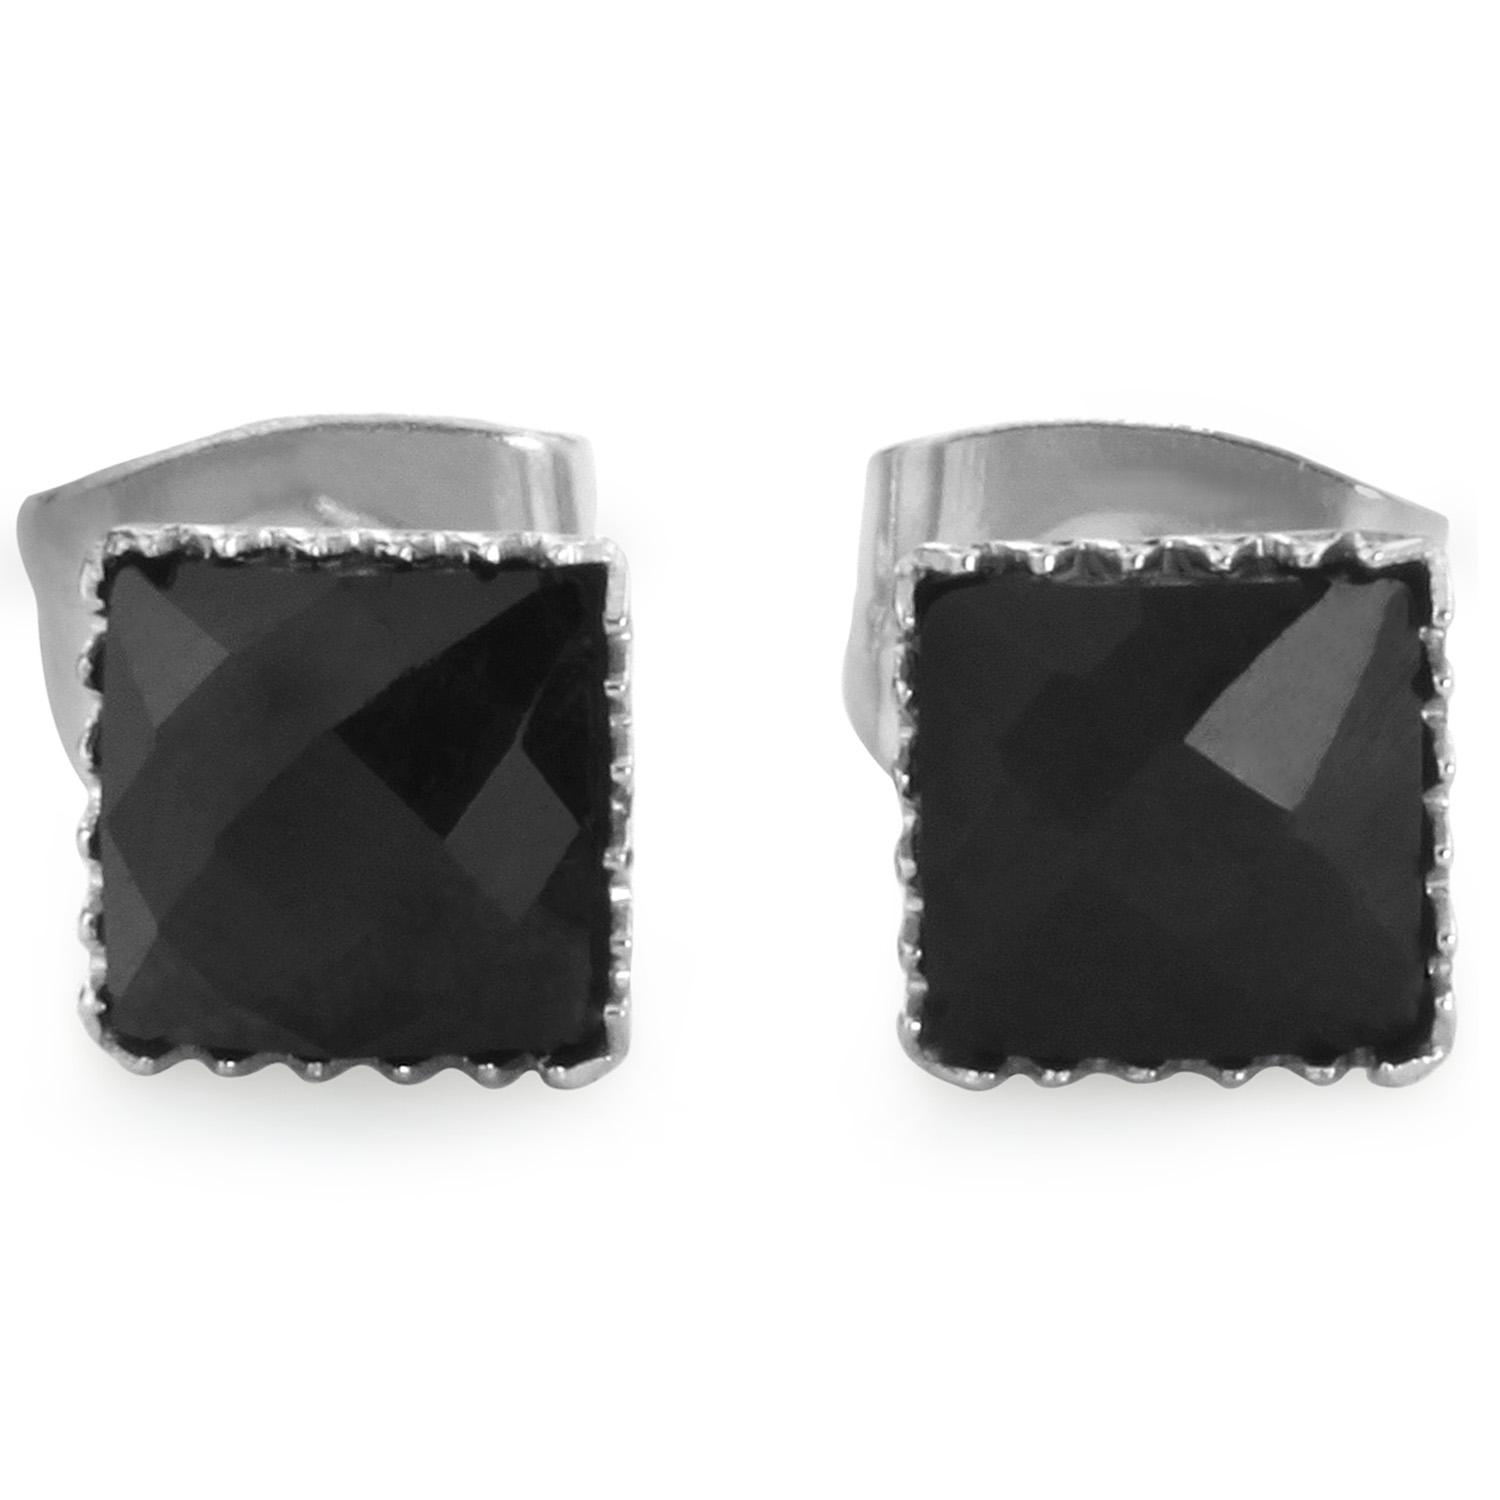 Pair of 316L Surgical Steel Faceted Square Black Onyx Gem Earrings - 5 mm